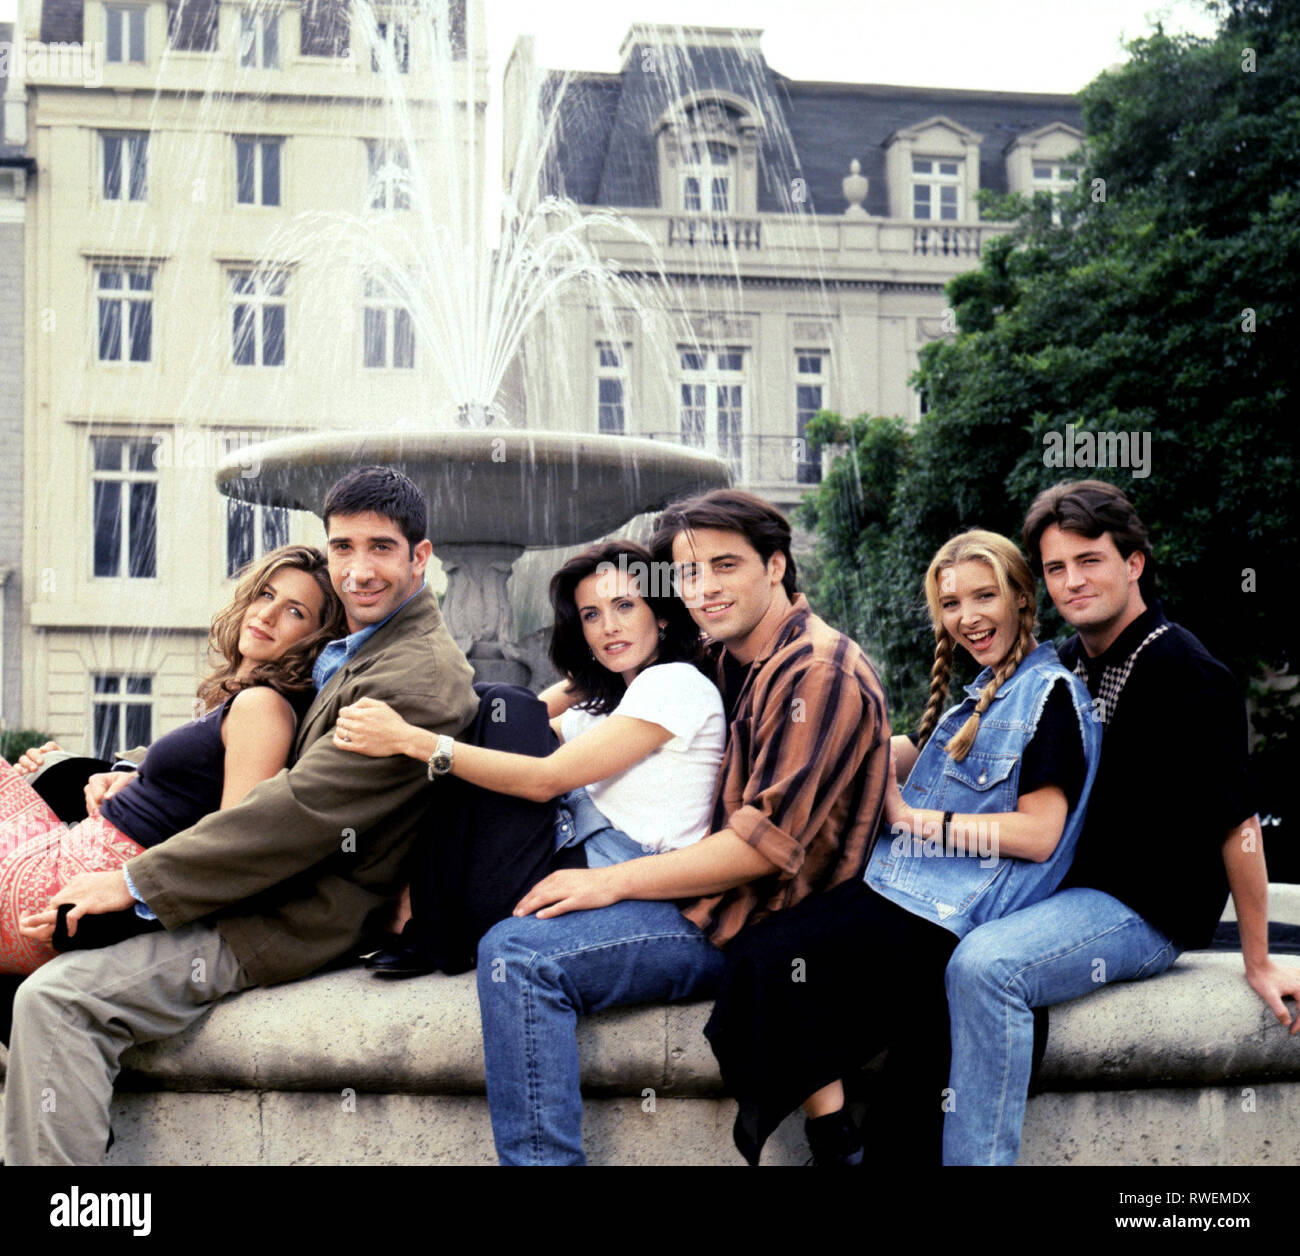 ANISTON,SCHWIMMER,COX,LEBLANC,KUDROW,PERRY, FRIENDS : SEASON 1, 1994 Stock Photo